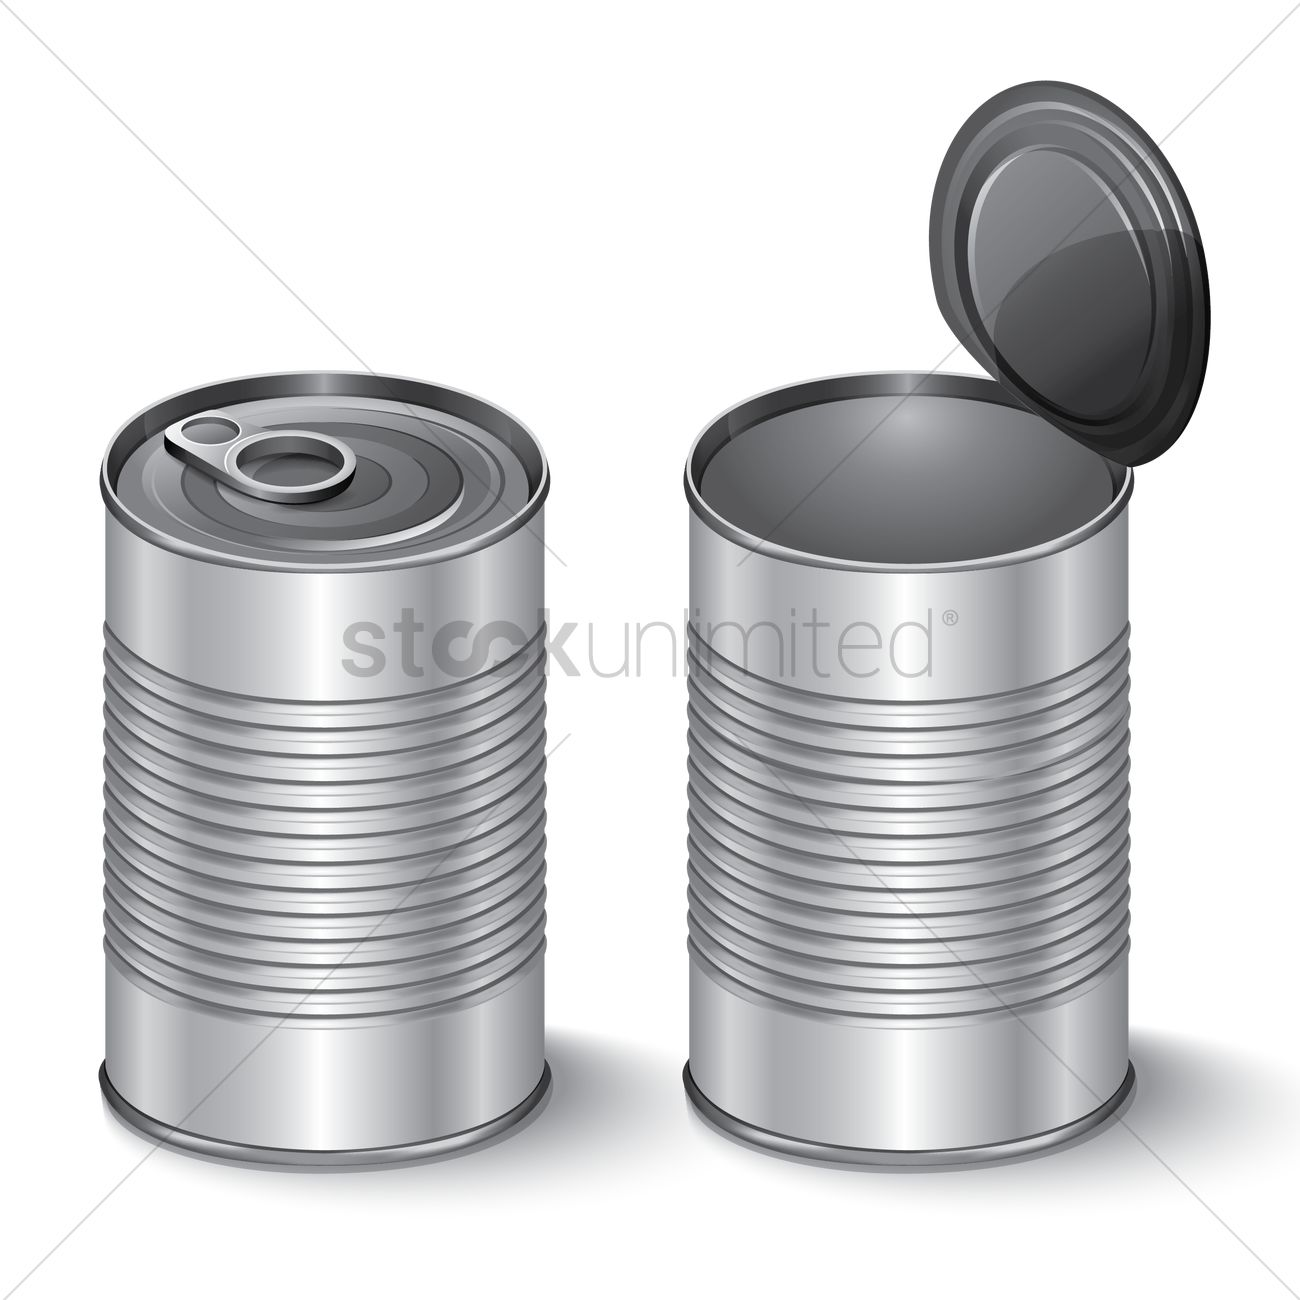 Tin can clipart 5 » Clipart Station.